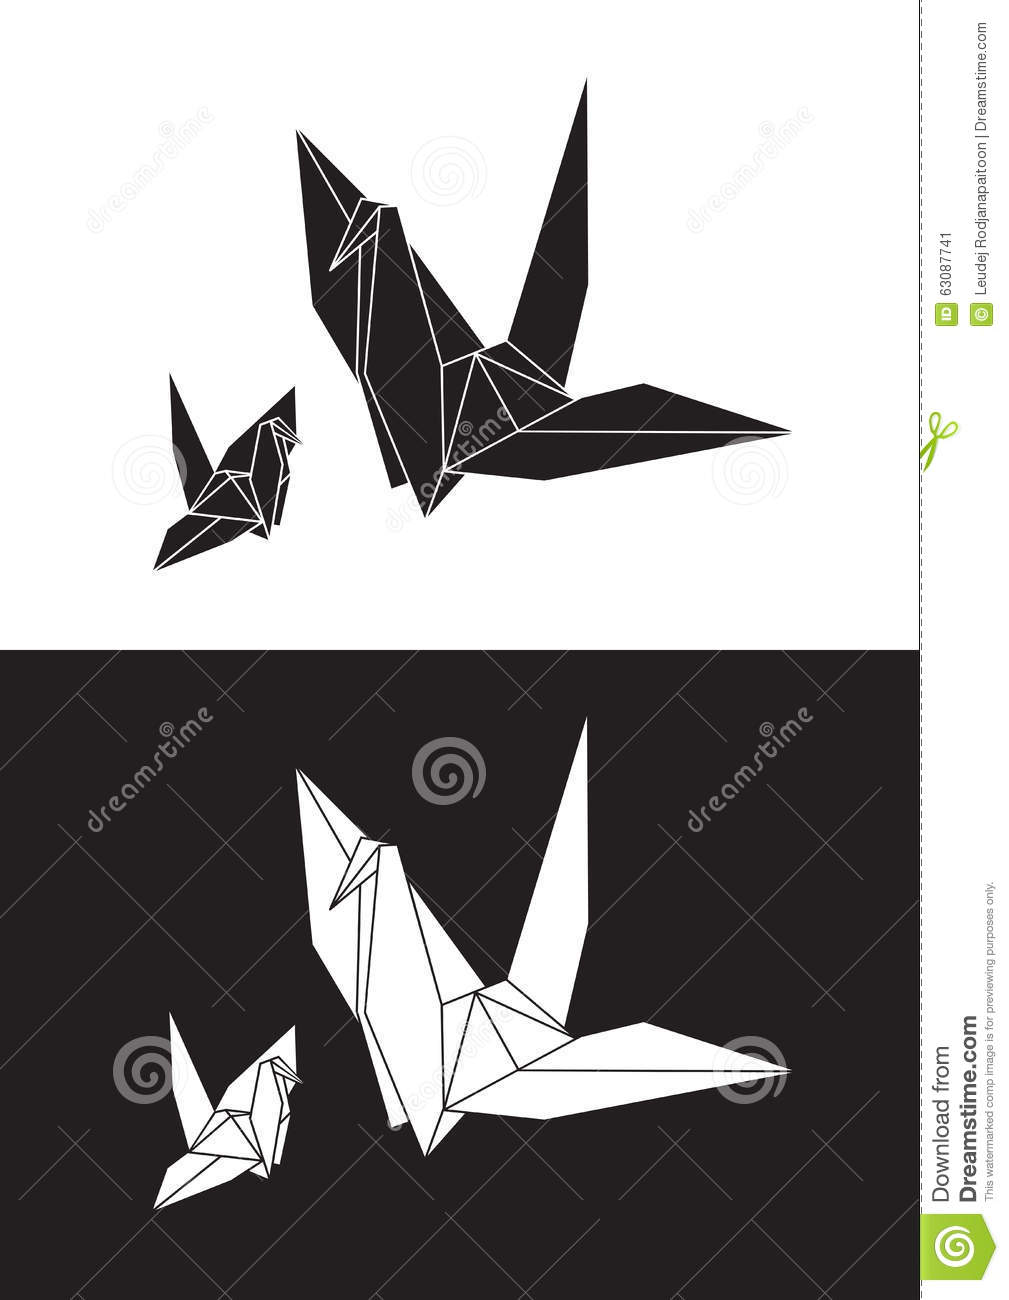 Download L'origami Blanc Tend Le Cou, Oiseau, Illustration Courante De Paper†«  Illustration Stock - Illustration du oiseau, clavette: 63087741